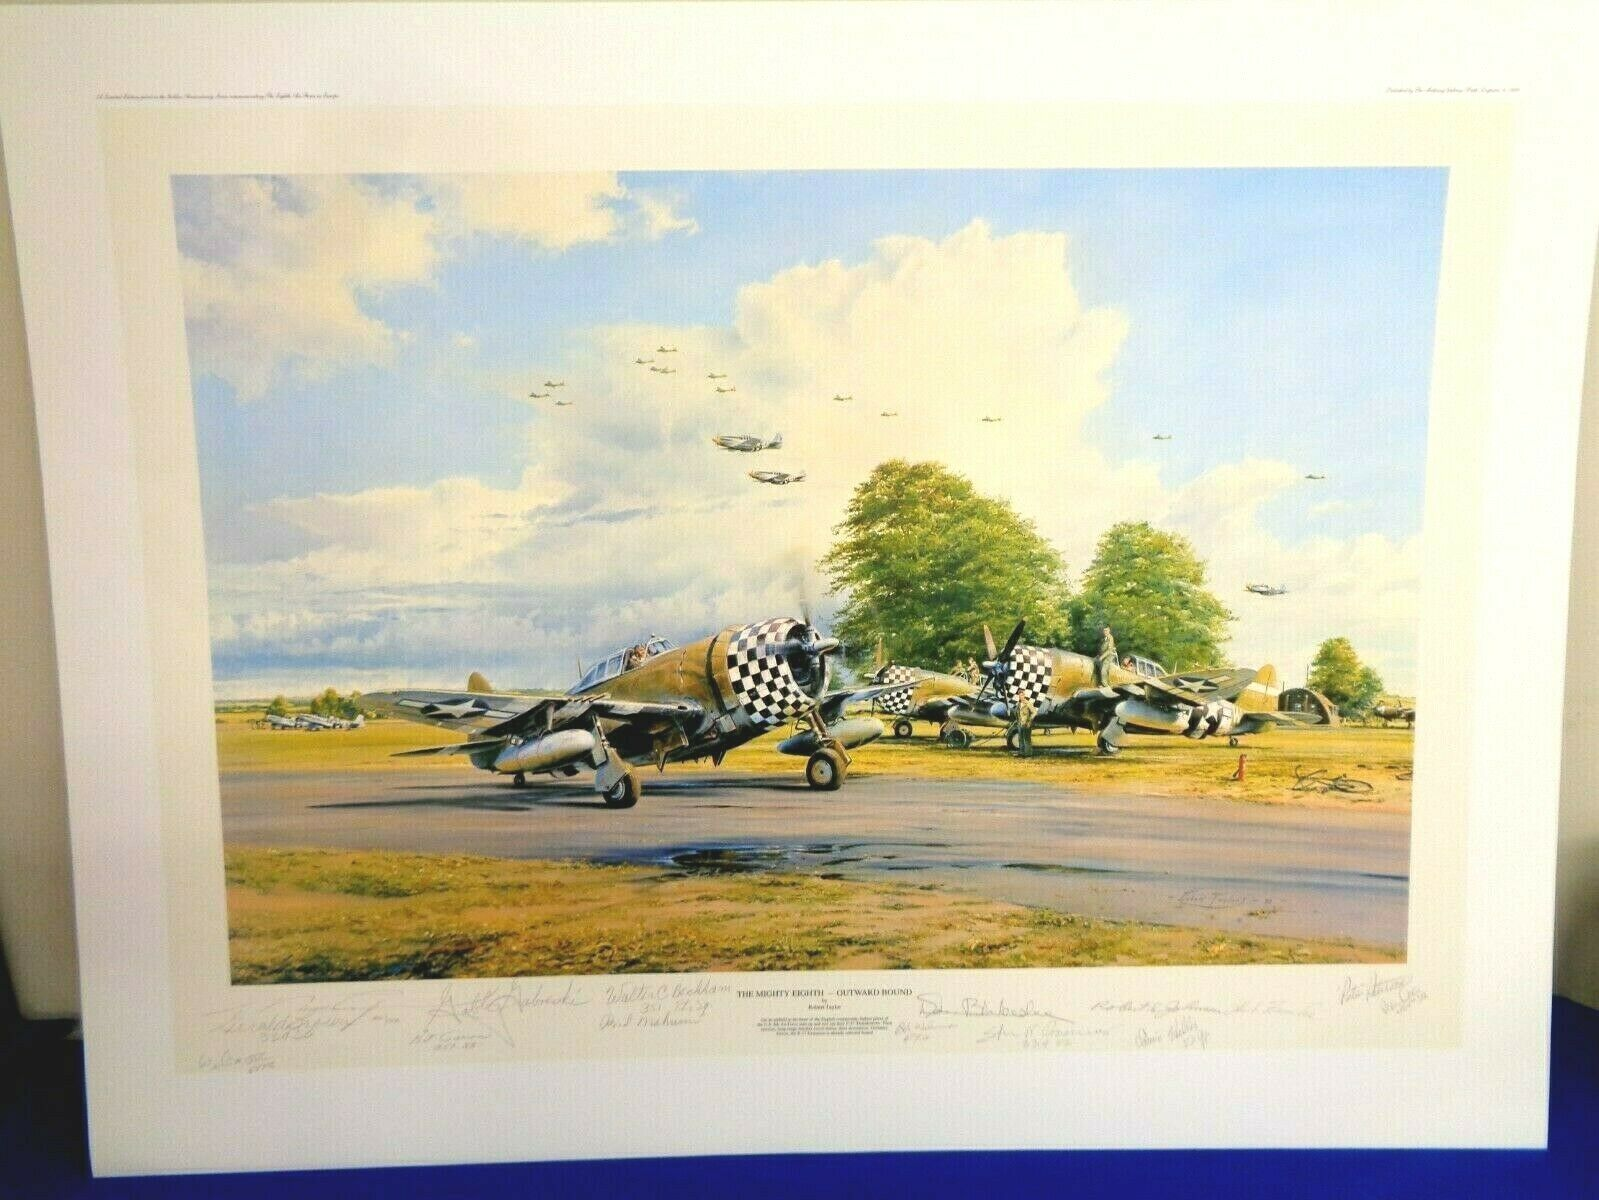 ROBERT TAYLOR PRINT THE MIGHTY EIGHTH OUTWARD BOUND - 14 SIGNATURES W/ COA  - $565.00